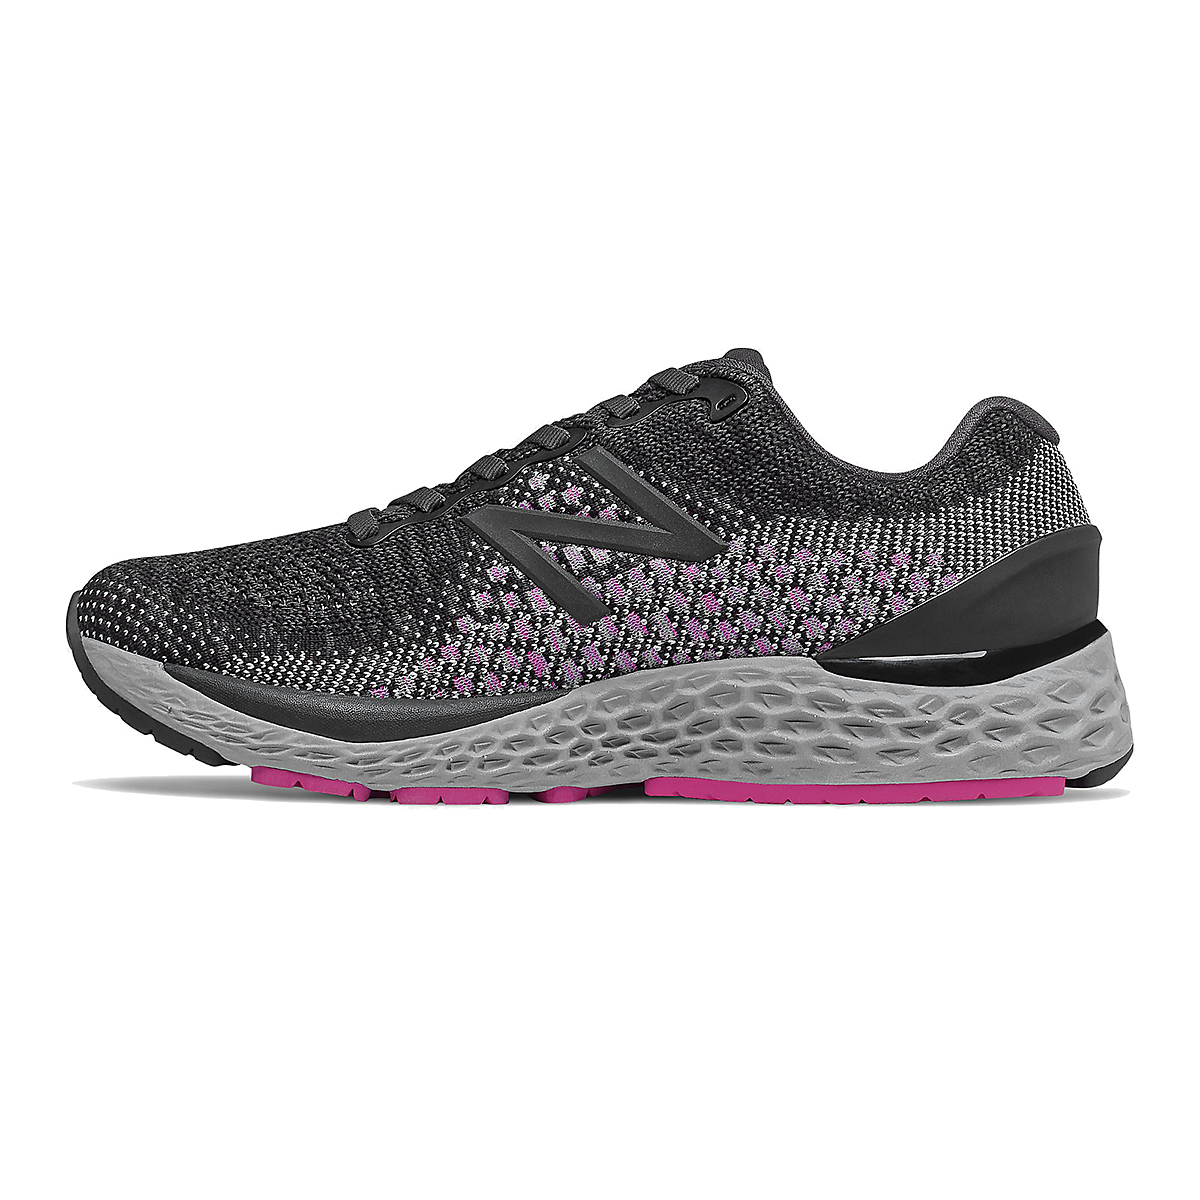 Women's New Balance Fresh Foam 880v10 Gore-Tex Running Shoes - Color: Black With Thunder - Size: 10 - Width: Regular, Black With Thunder, large, image 2